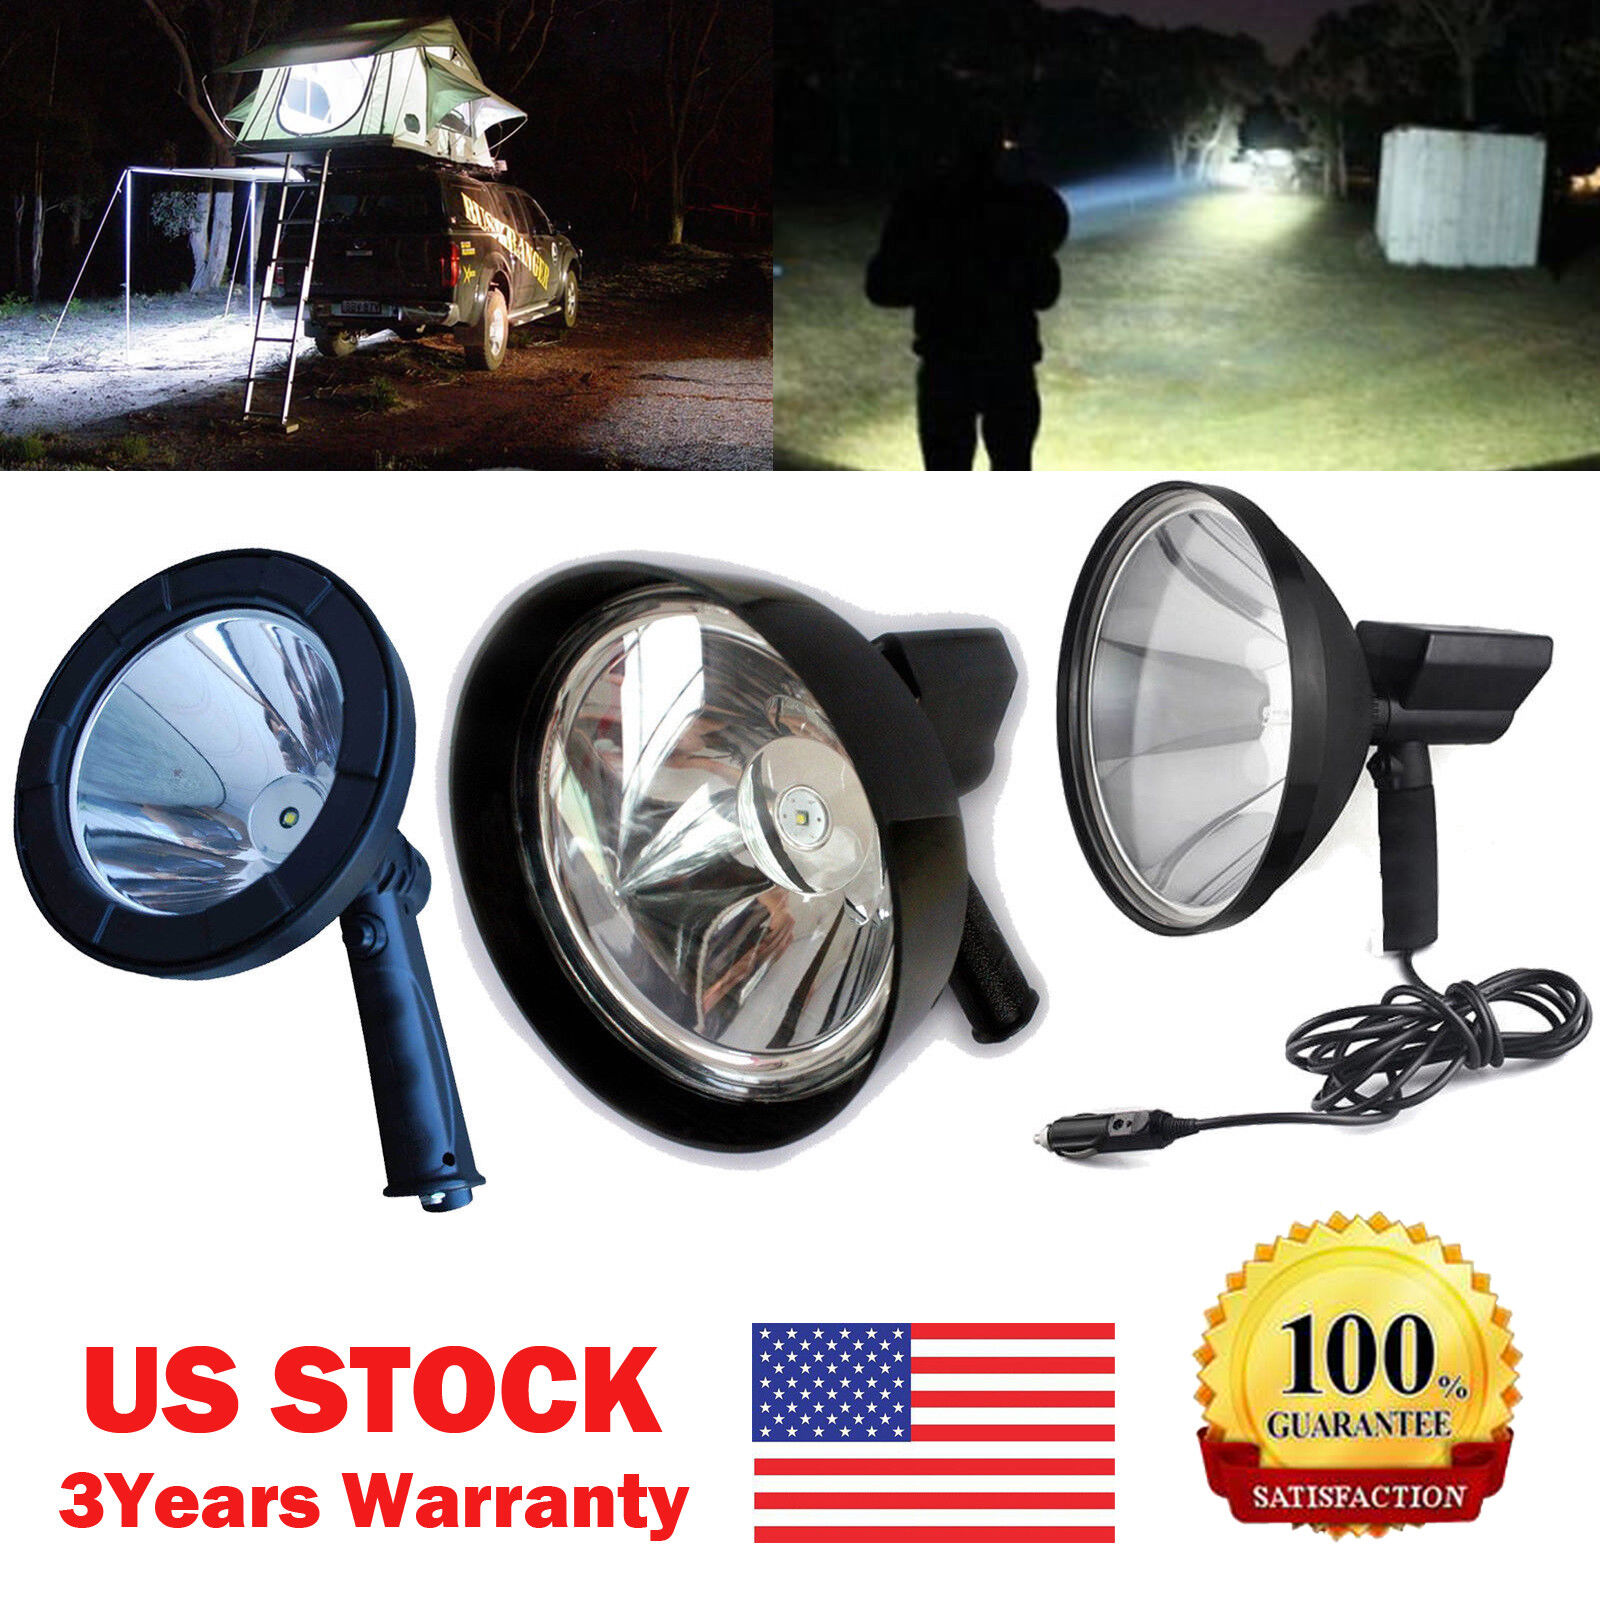 HUNTING 1200W  Waterproof LED HID Spot Light Spotlight Beam Lamp Camping Fishing  presenting all the latest high street fashion